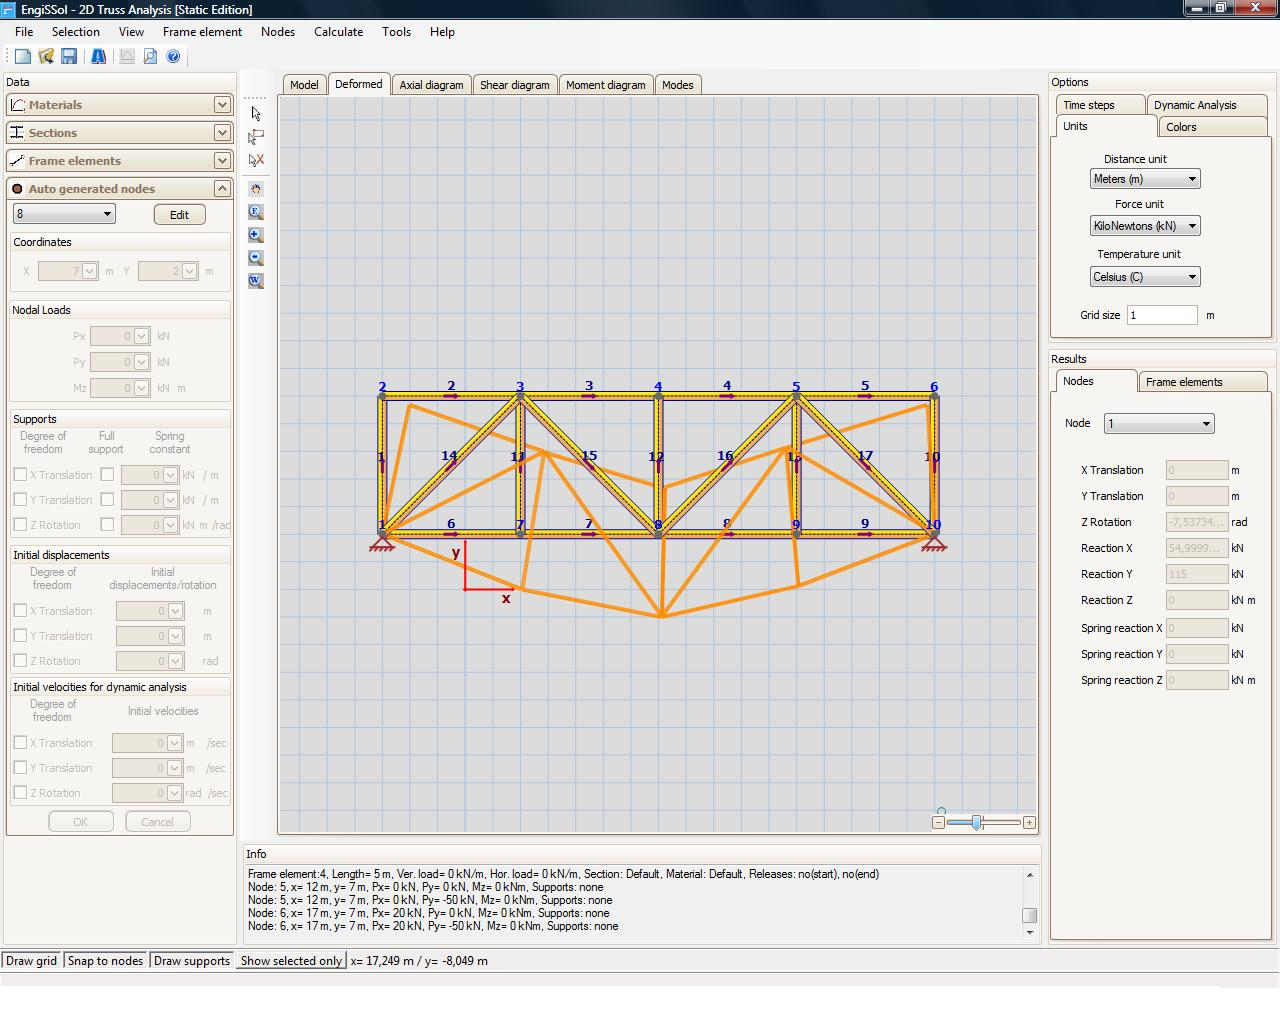 2d truss analysis 2 0 free download for Order trusses online